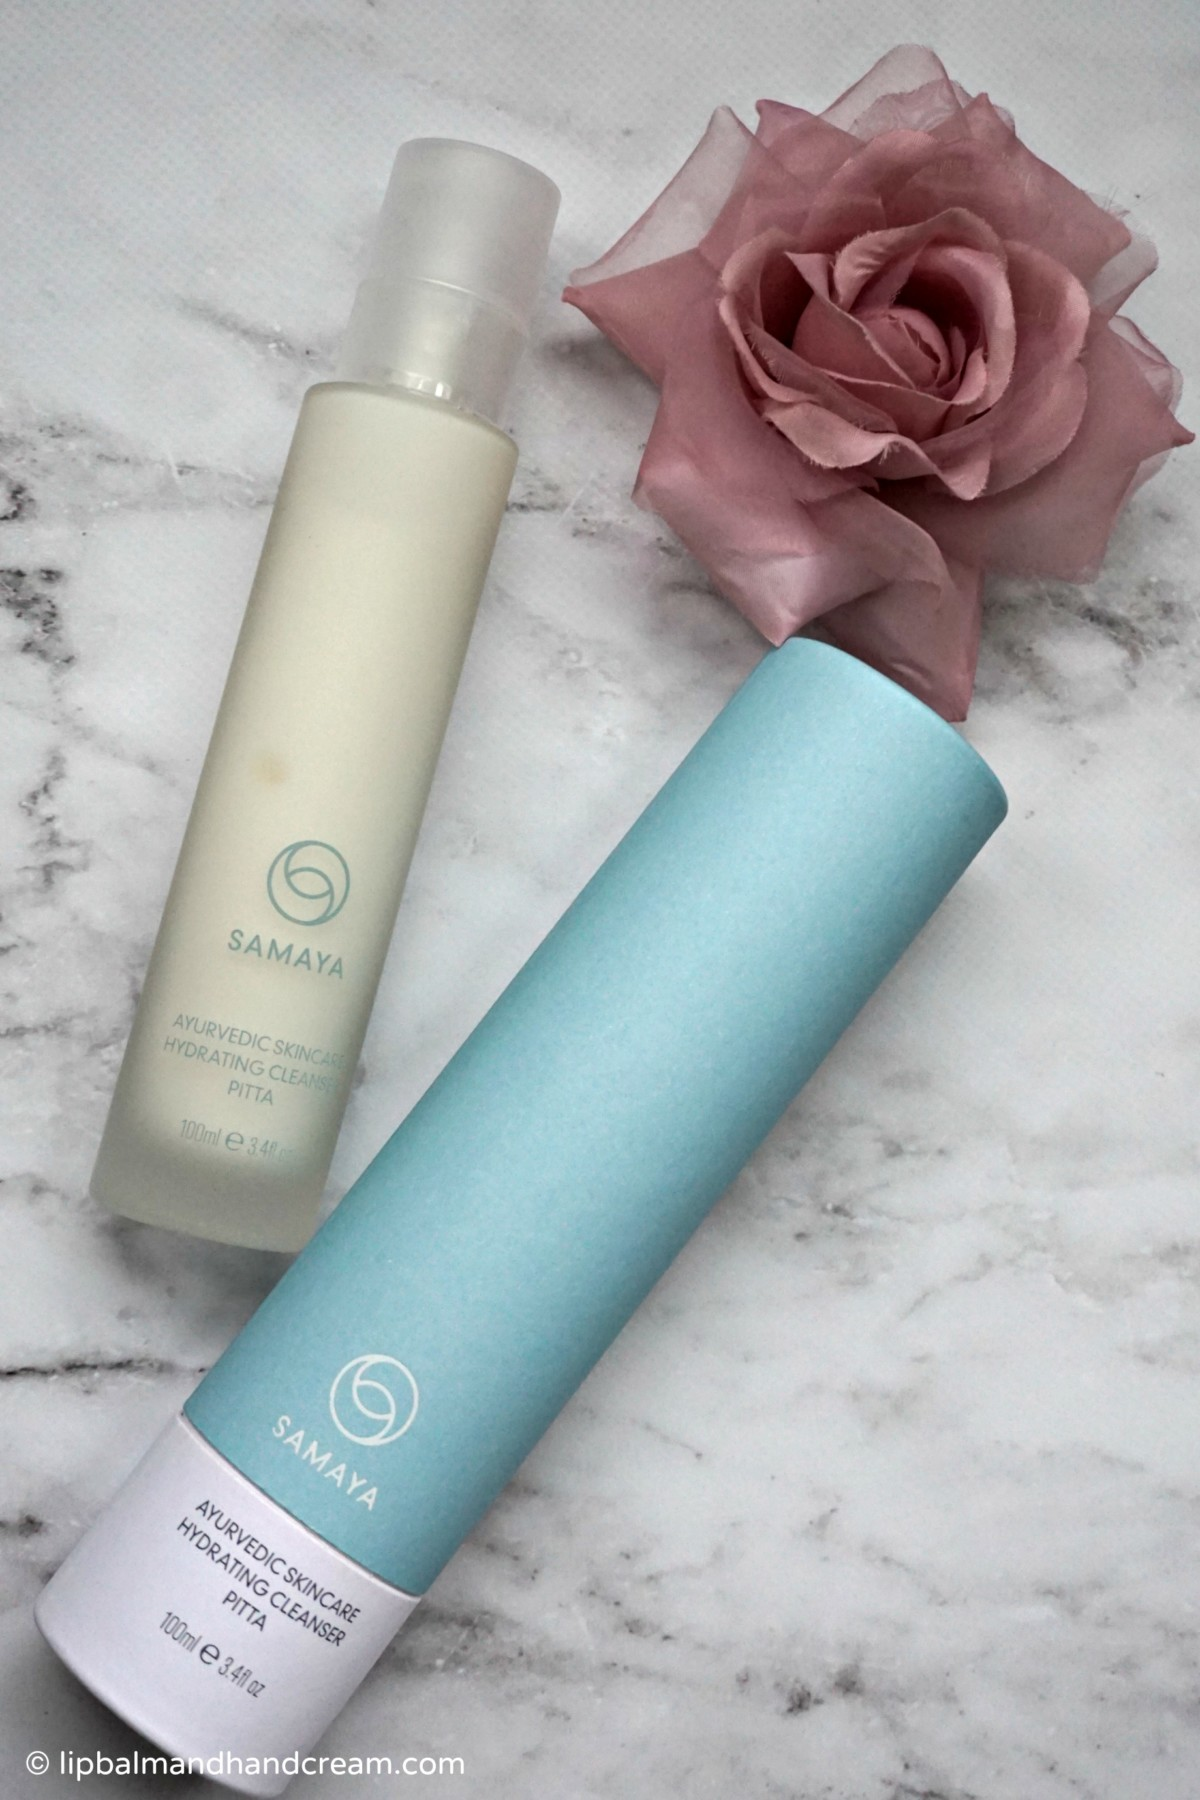 Samaya pitta hydrating cleanser and face mask – a much needed skincare boost this busy month